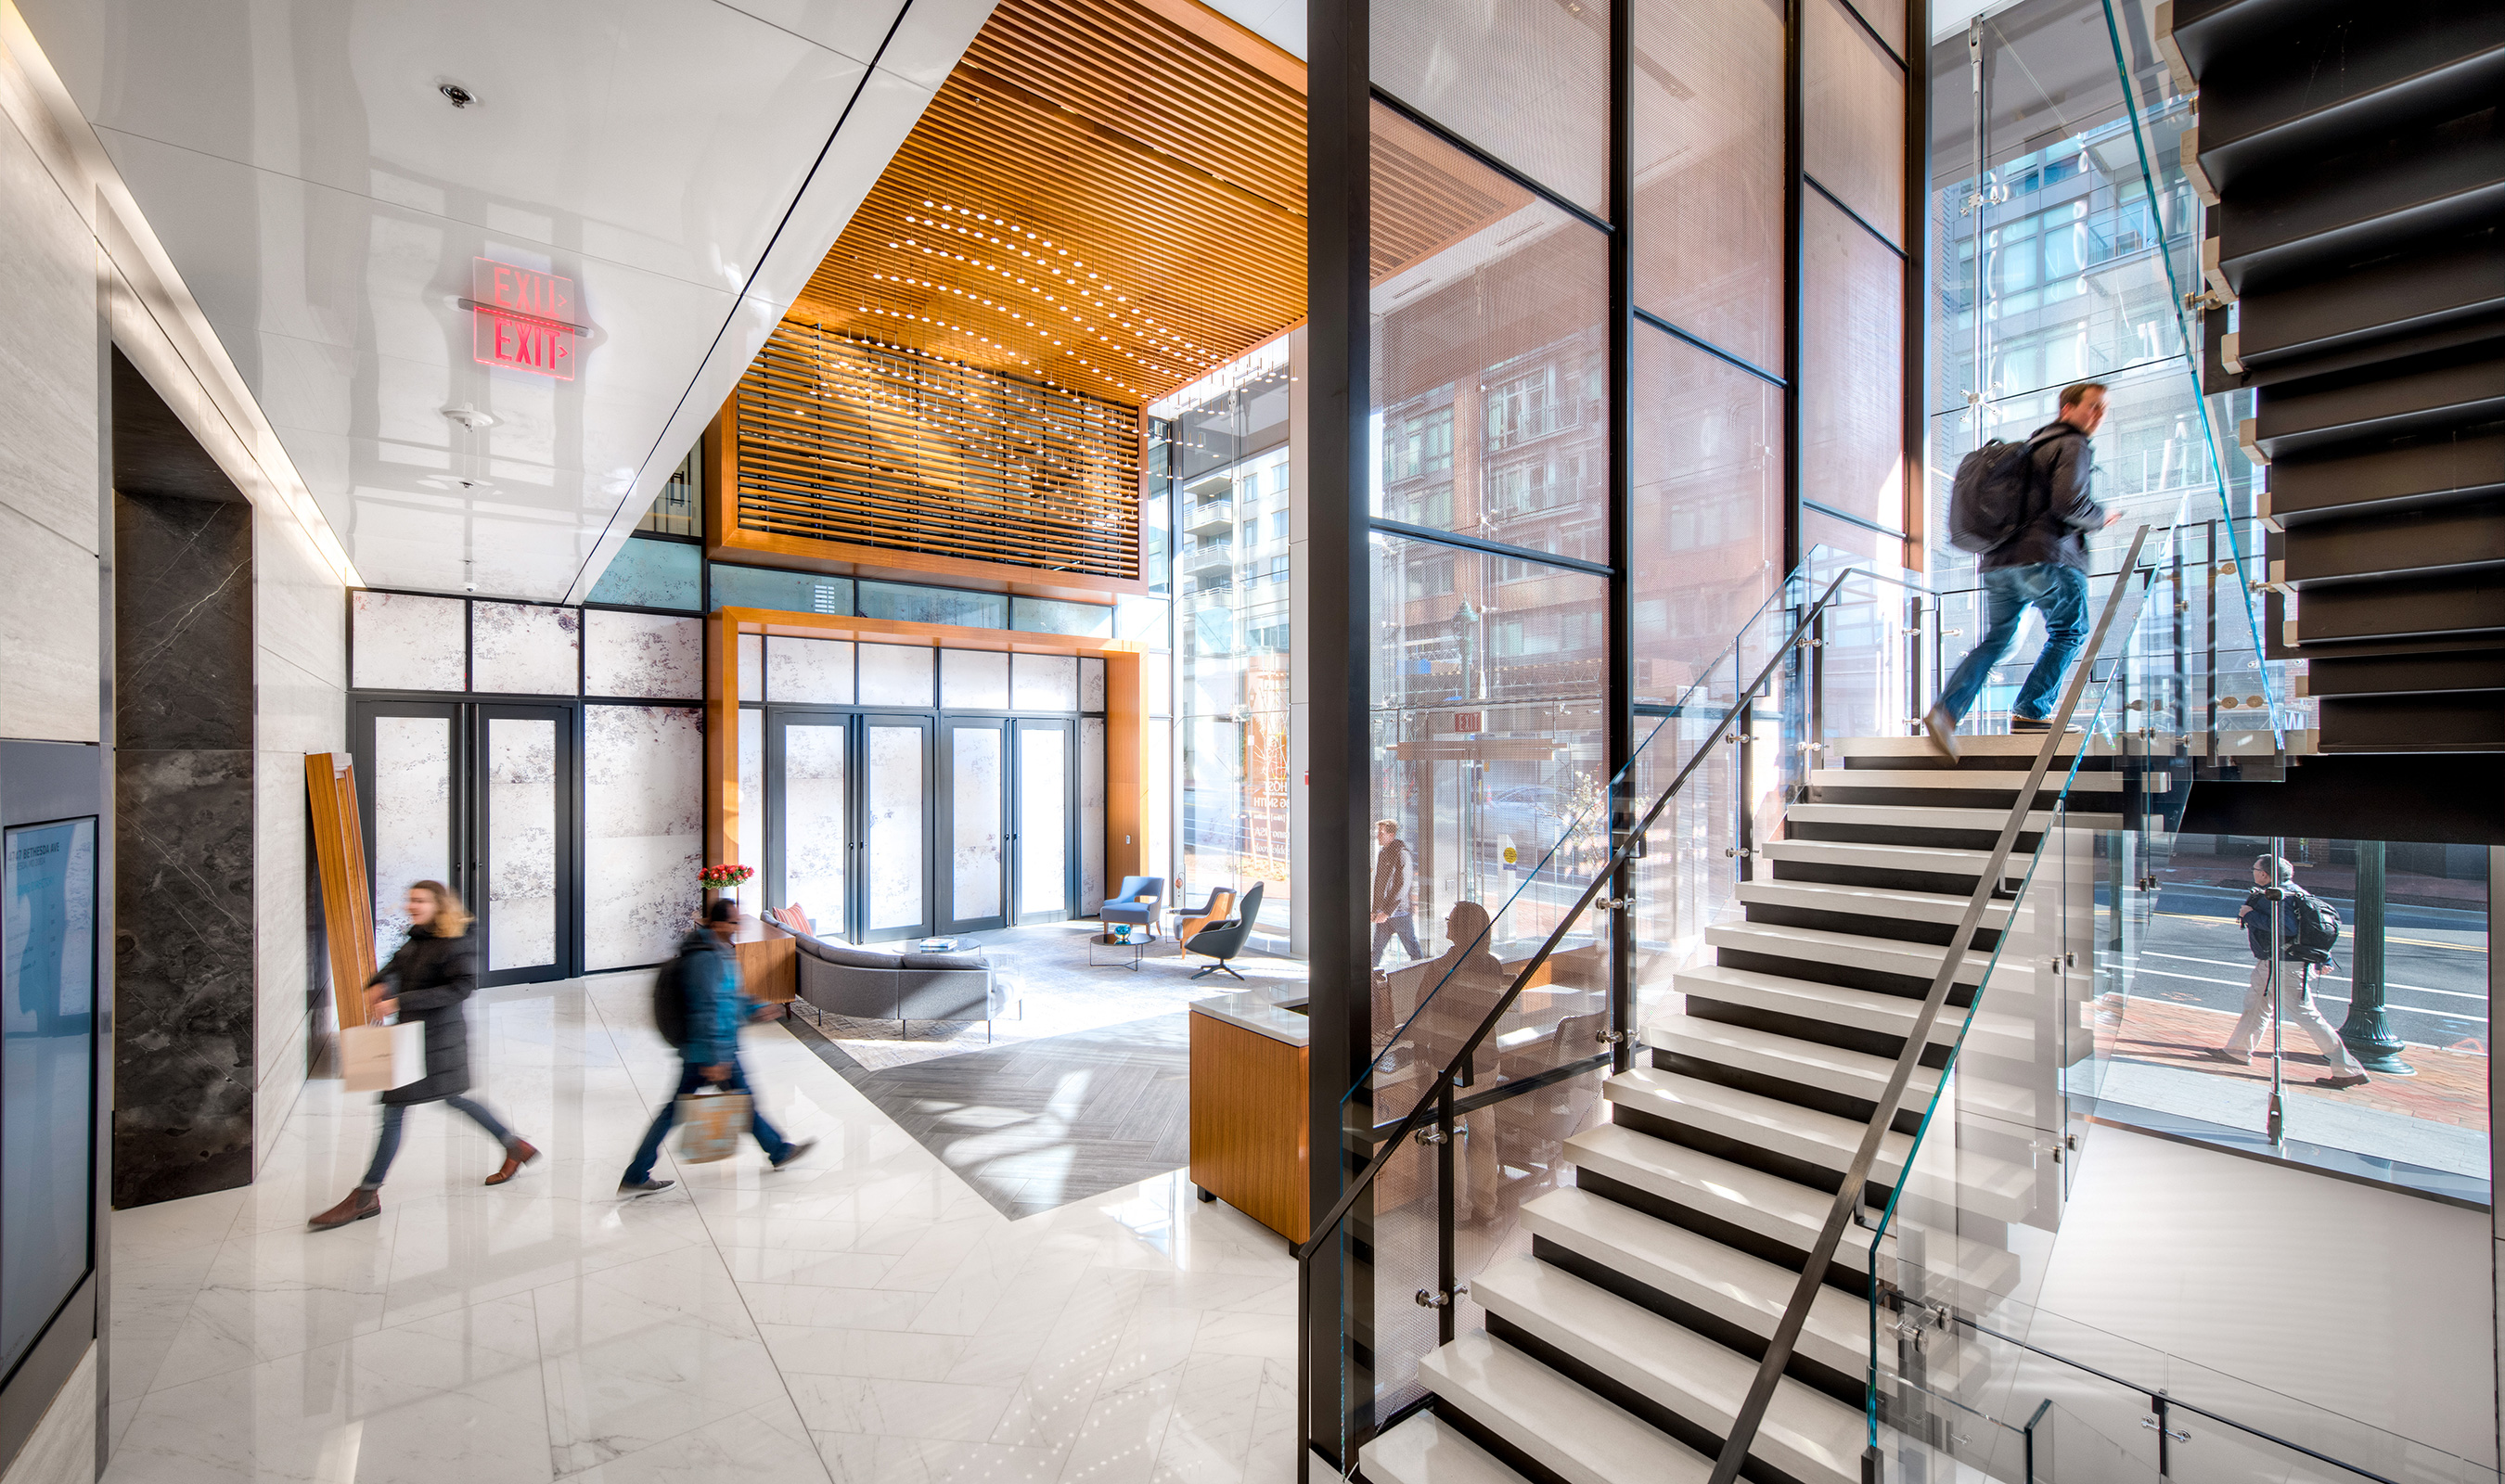 The woven wire mesh screen spans three floors of this workspace.